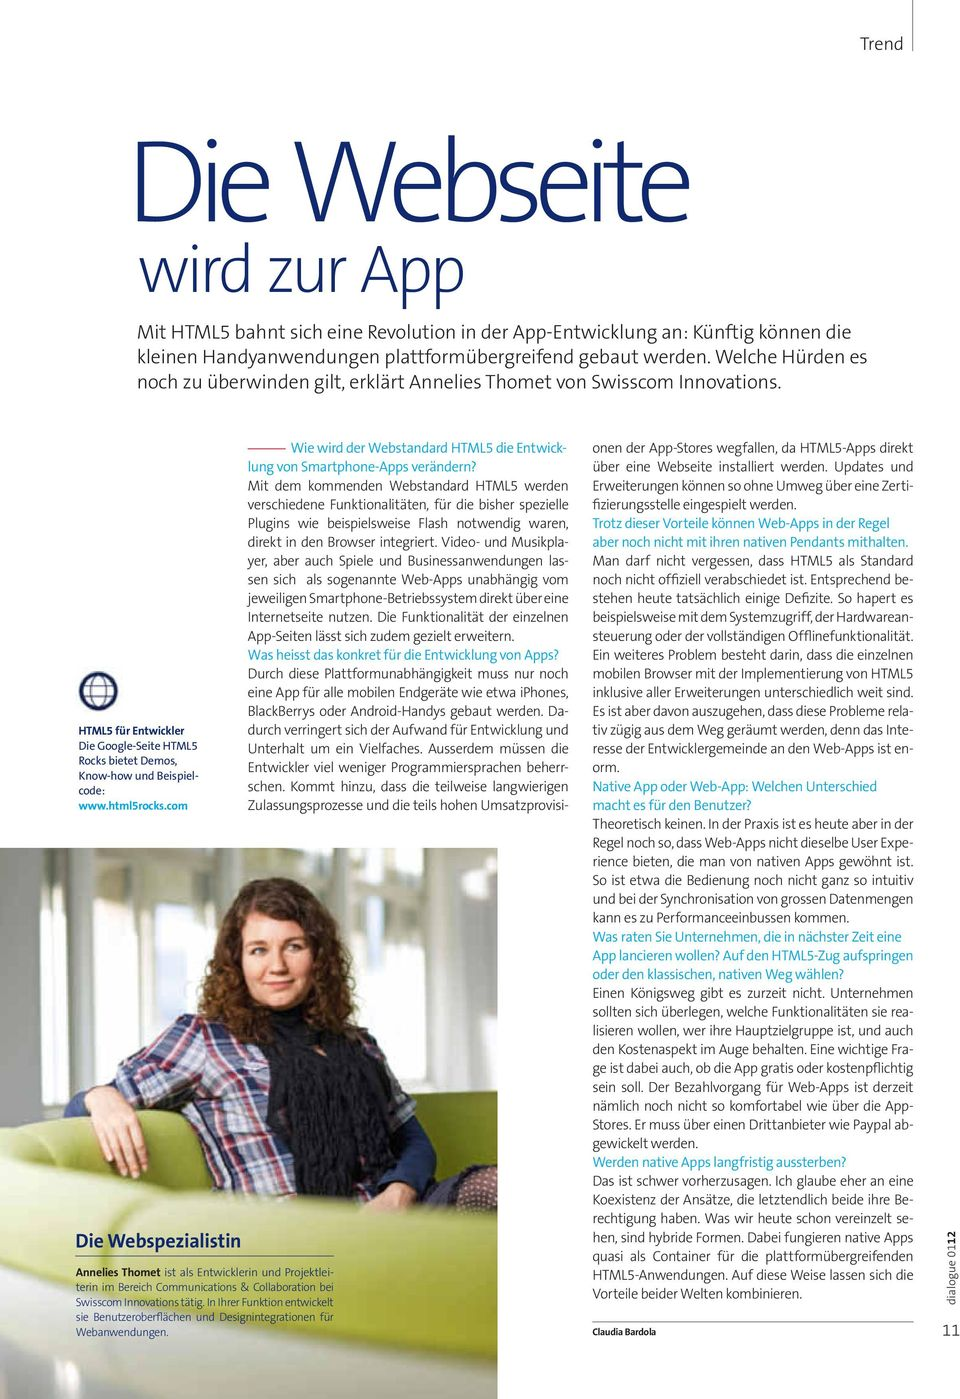 com Die Webspezialistin Annelies Thomet ist als Entwicklerin und Projektleiterin im Bereich Communications & Collaboration bei Swisscom Innovations tätig.